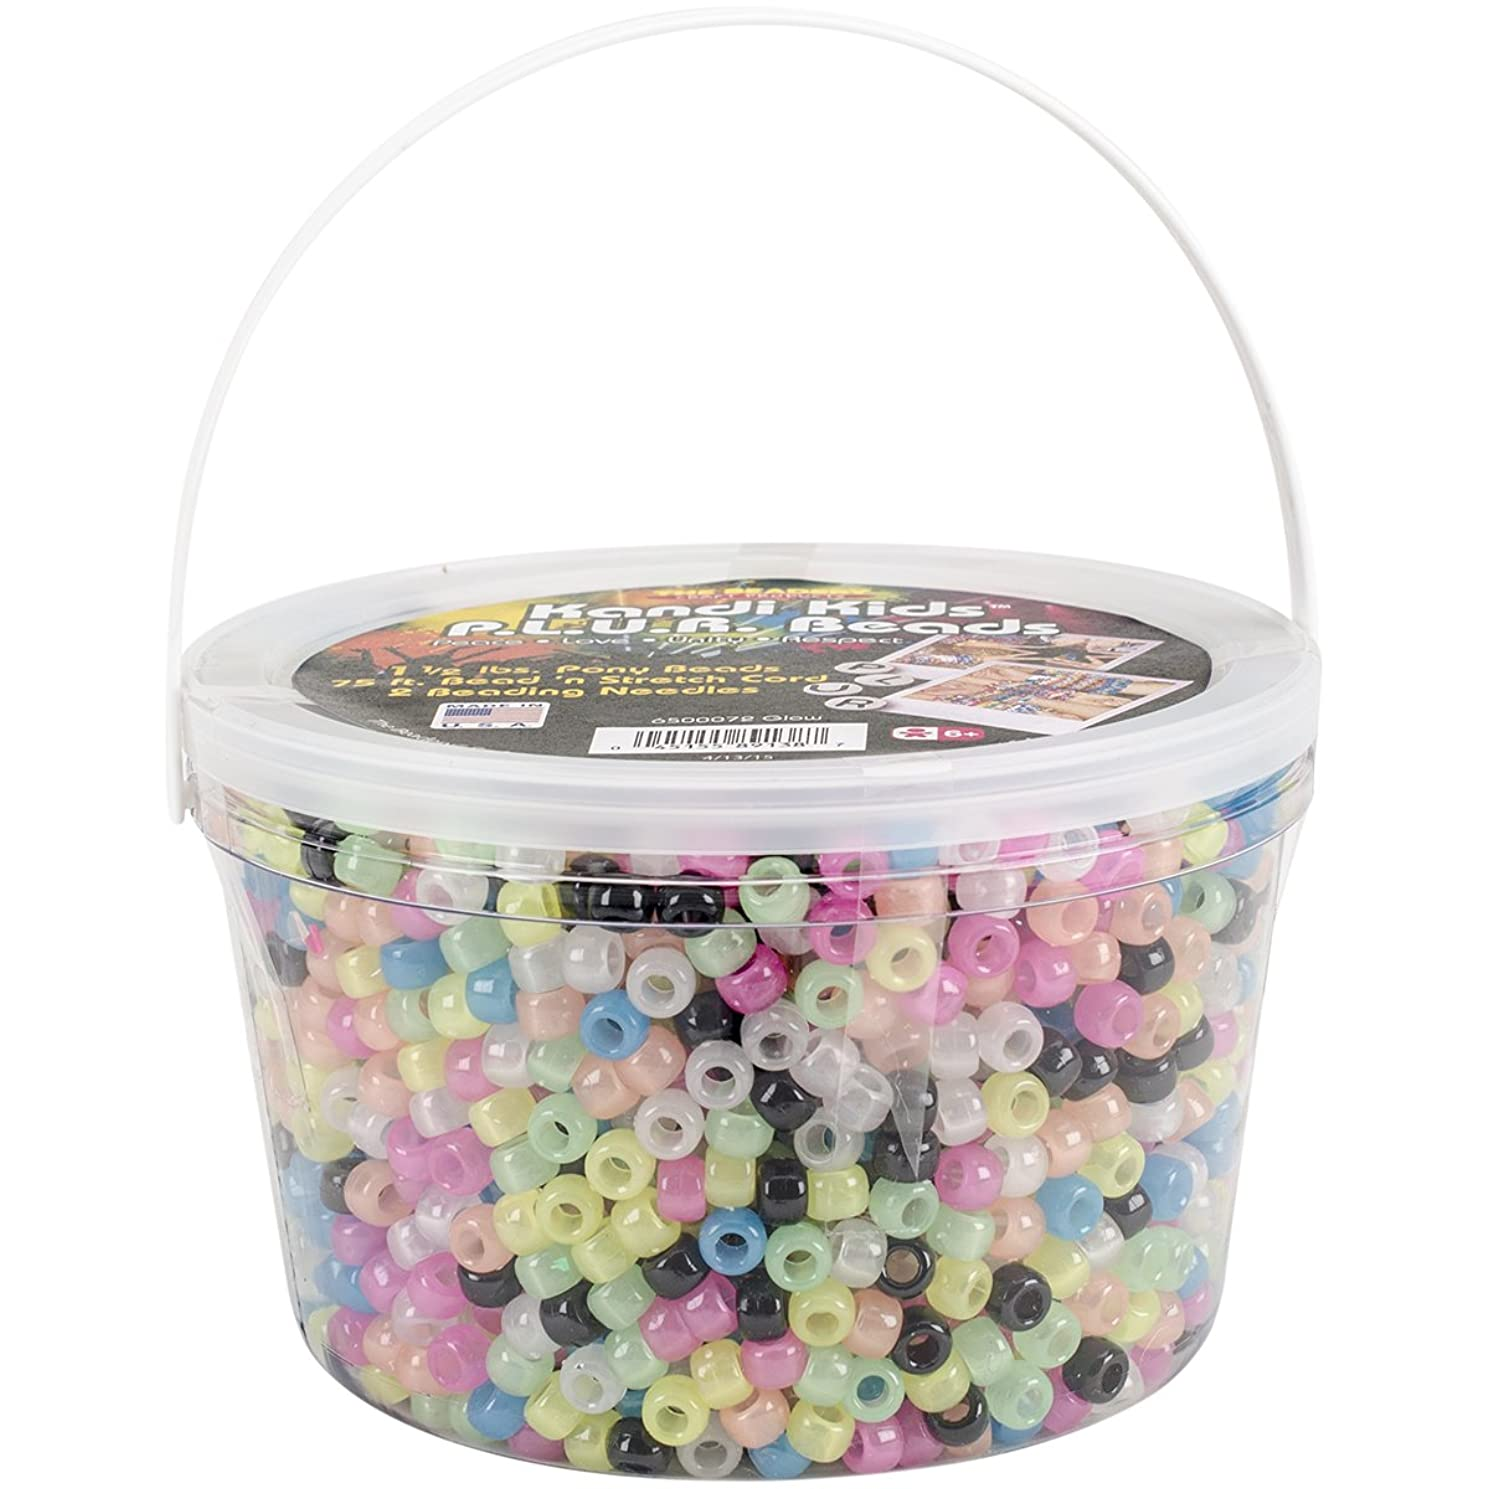 The Beadery Ultra Kandi Rave Bead Glow Bucket, Dark Multicolor